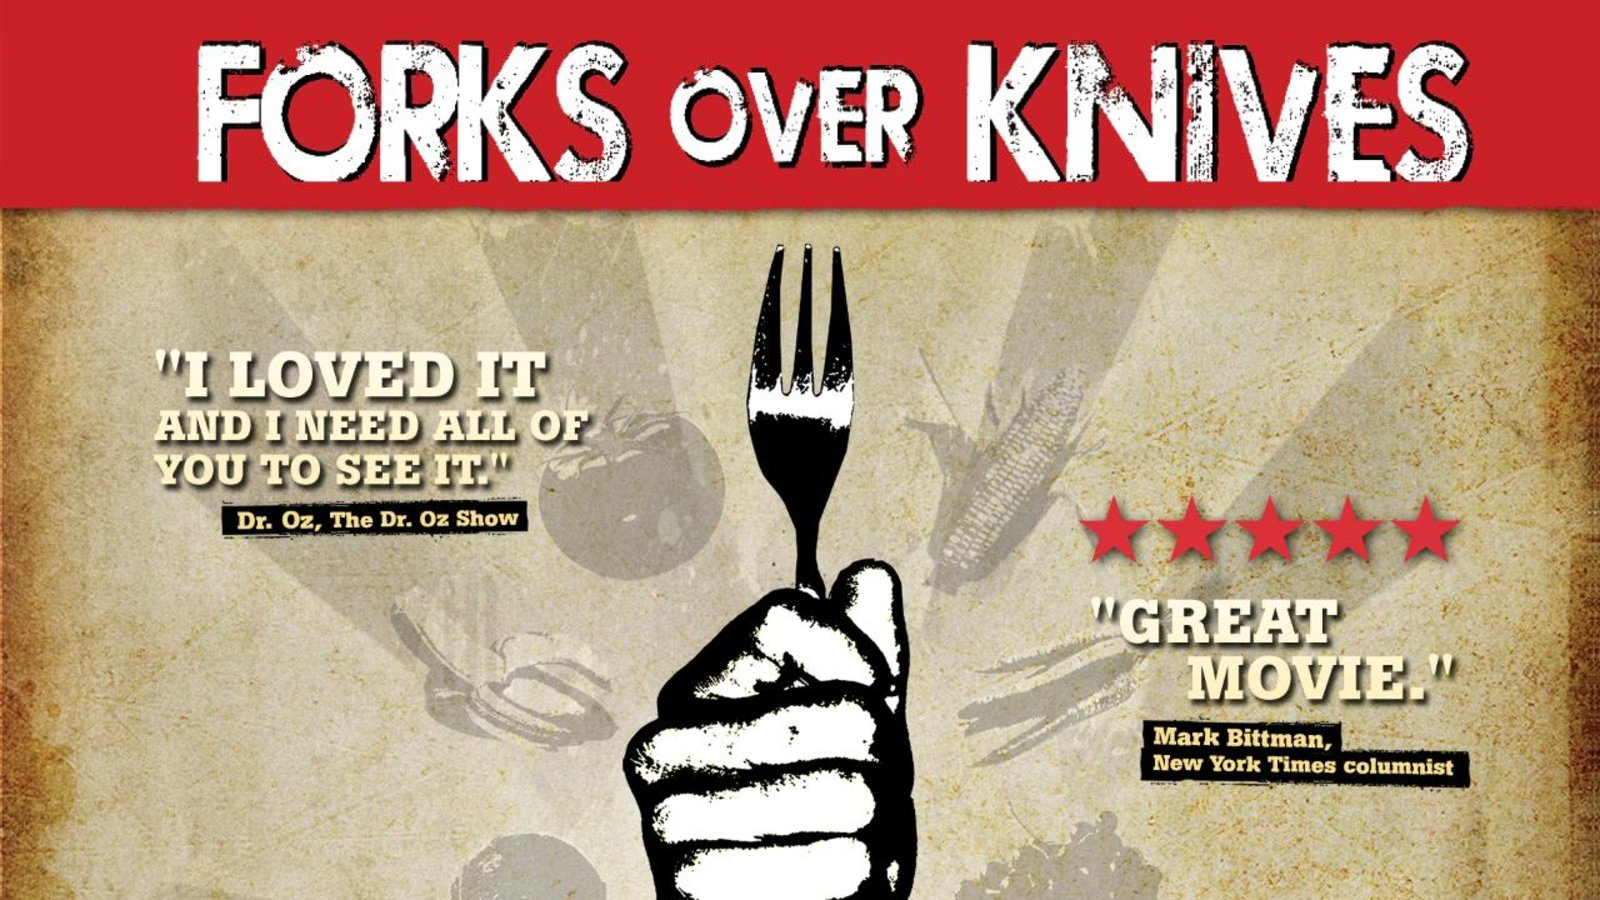 Forks Over Knives - Mass Food Consumption and Escalating Rates of Health Decline